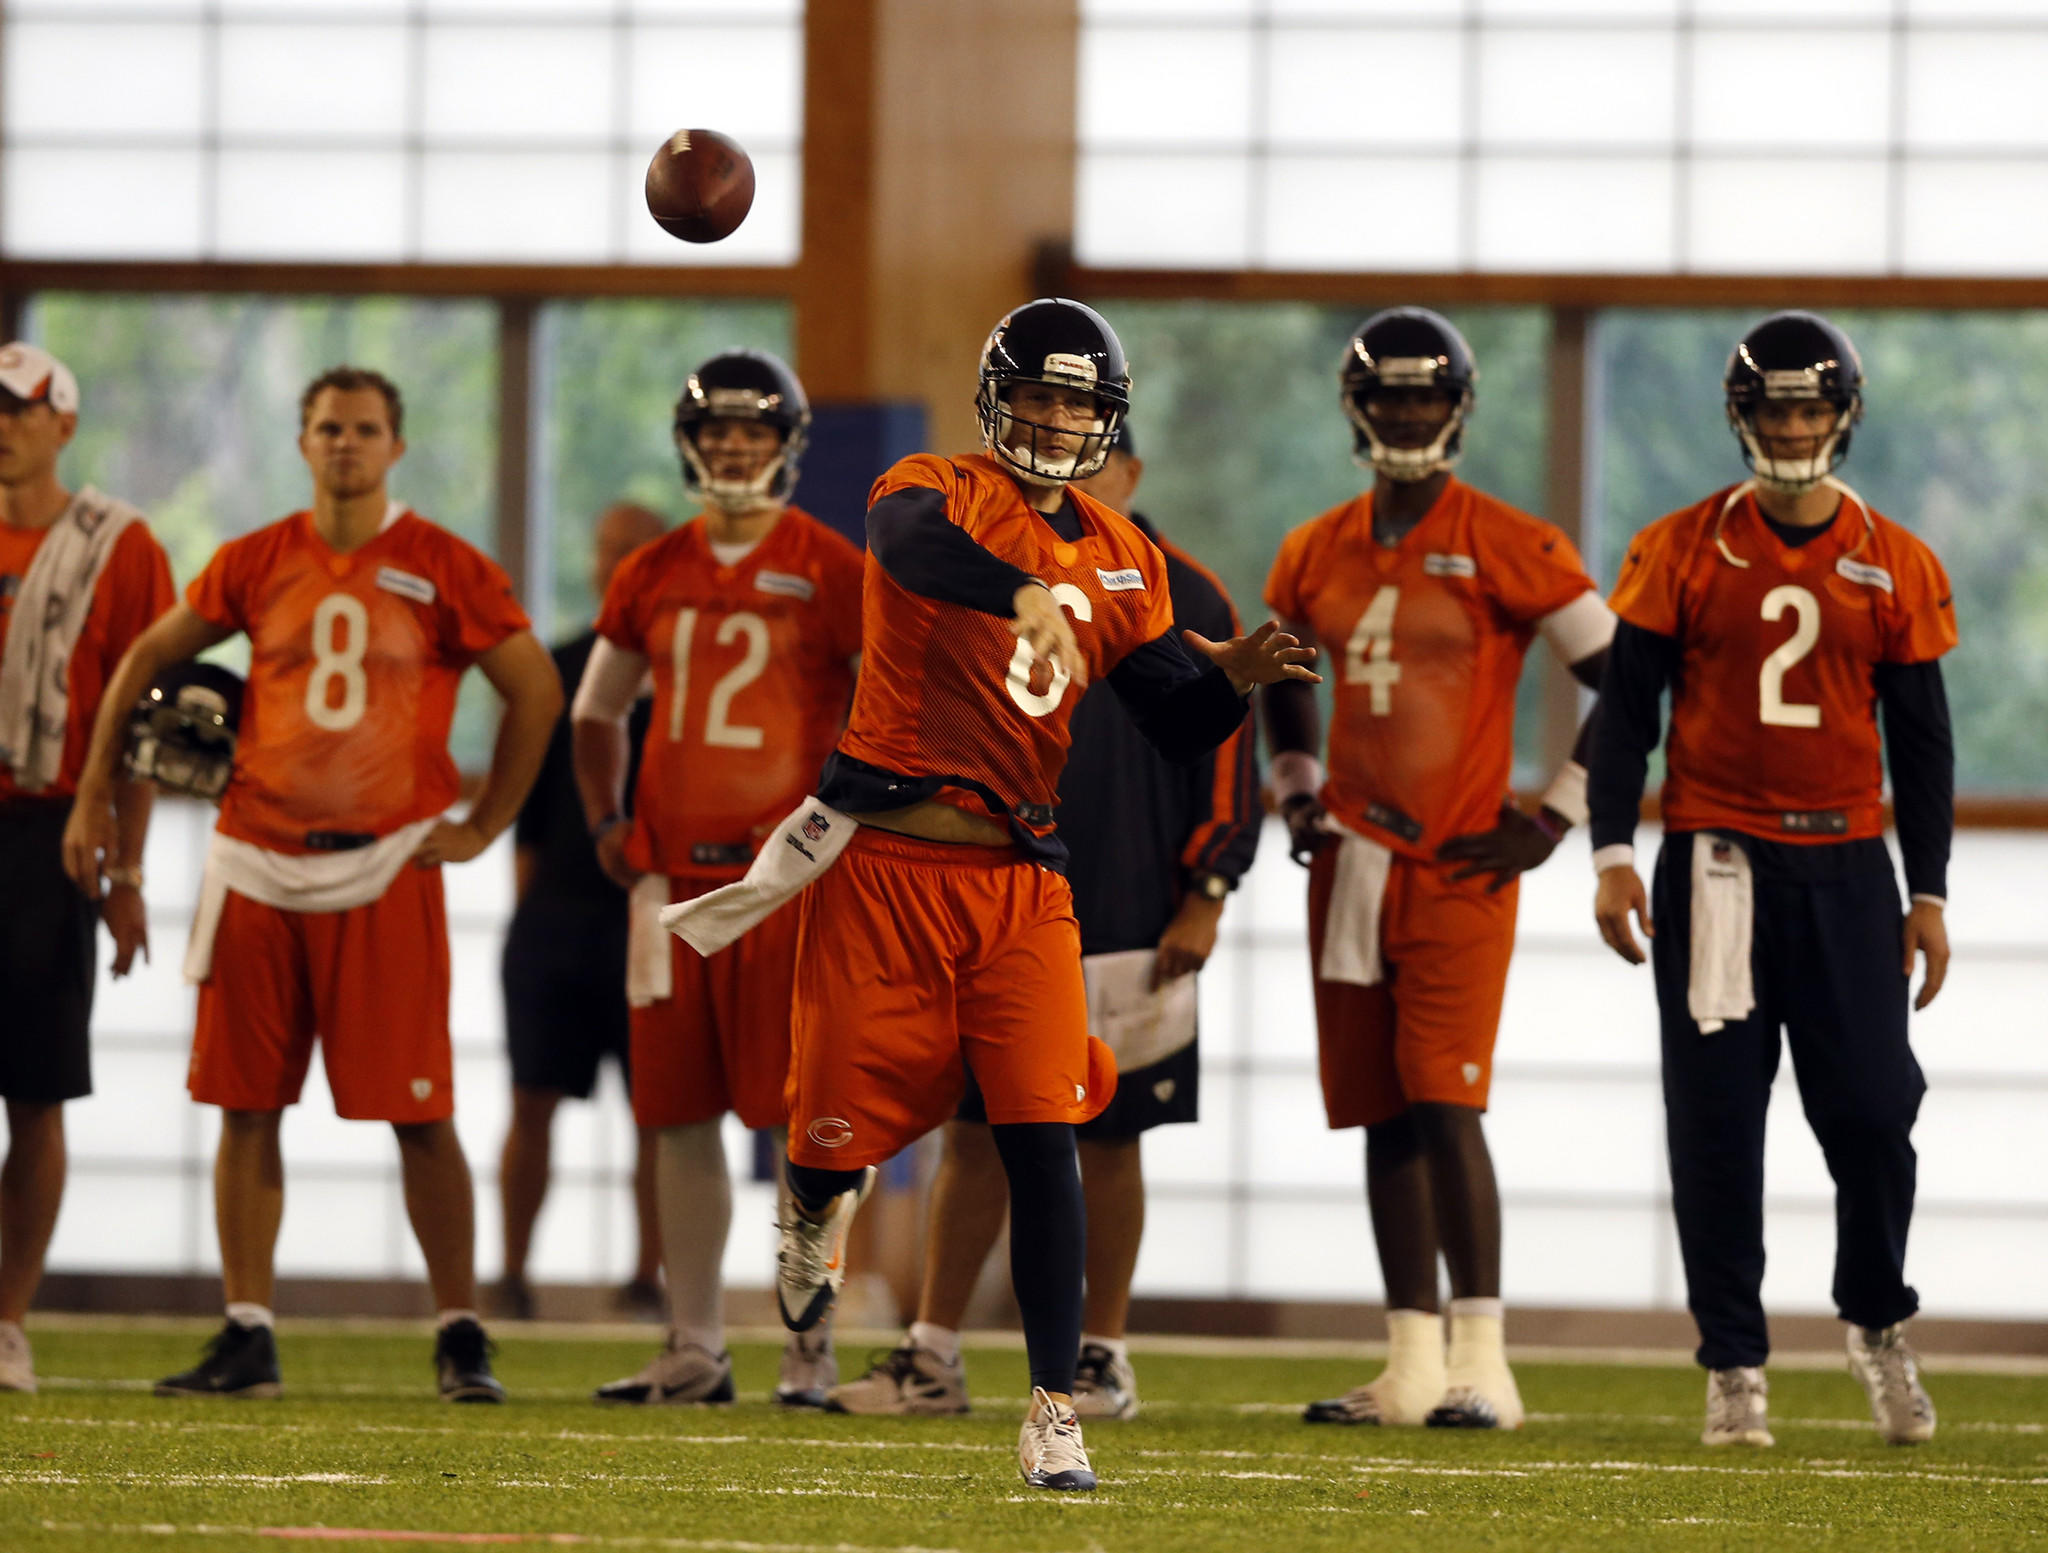 Chicago Bears' quarterbacks' Jay Cutler during this week's minicamp at Halas Hall.